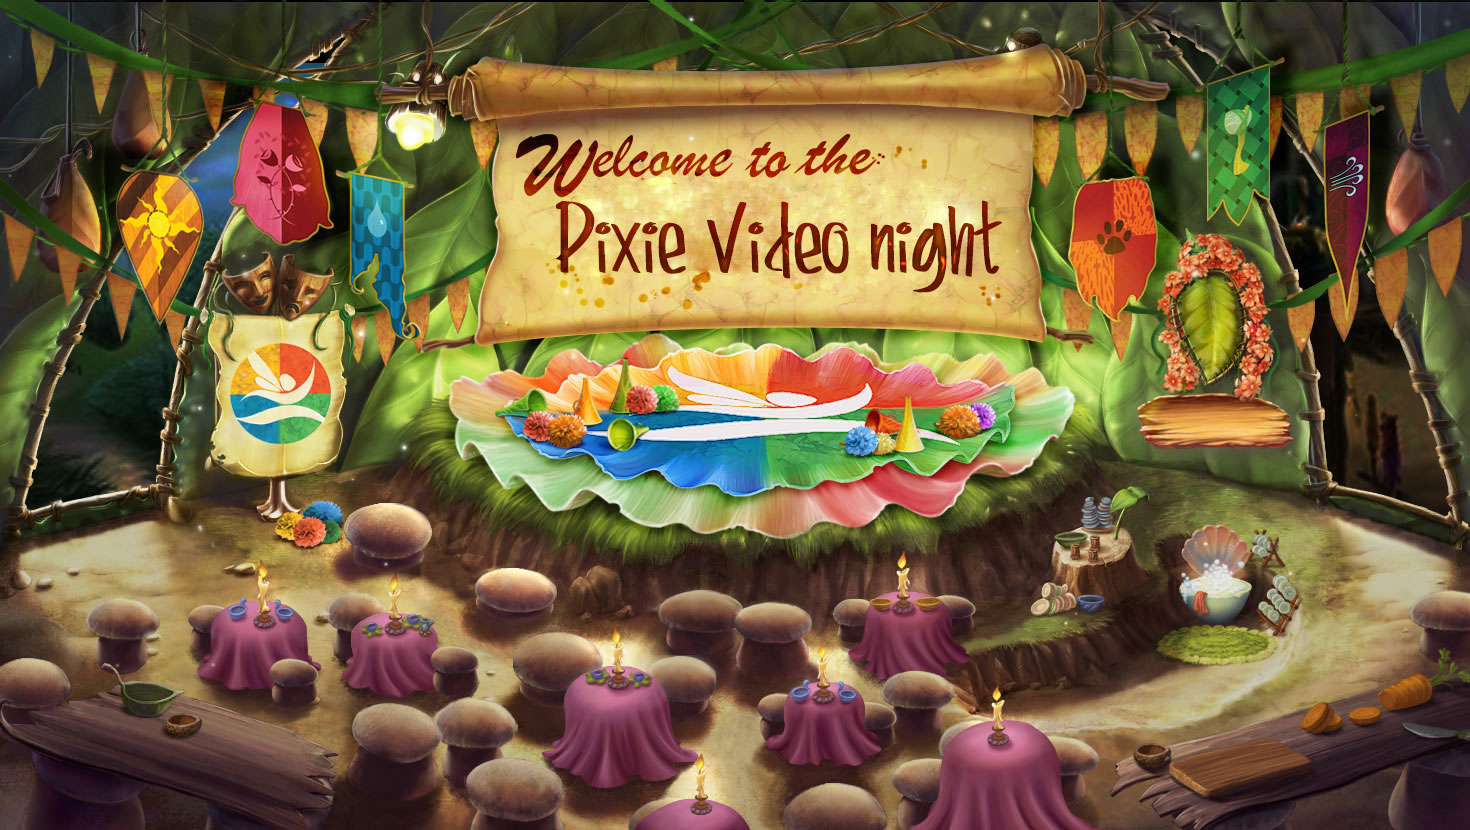 Pixie video party